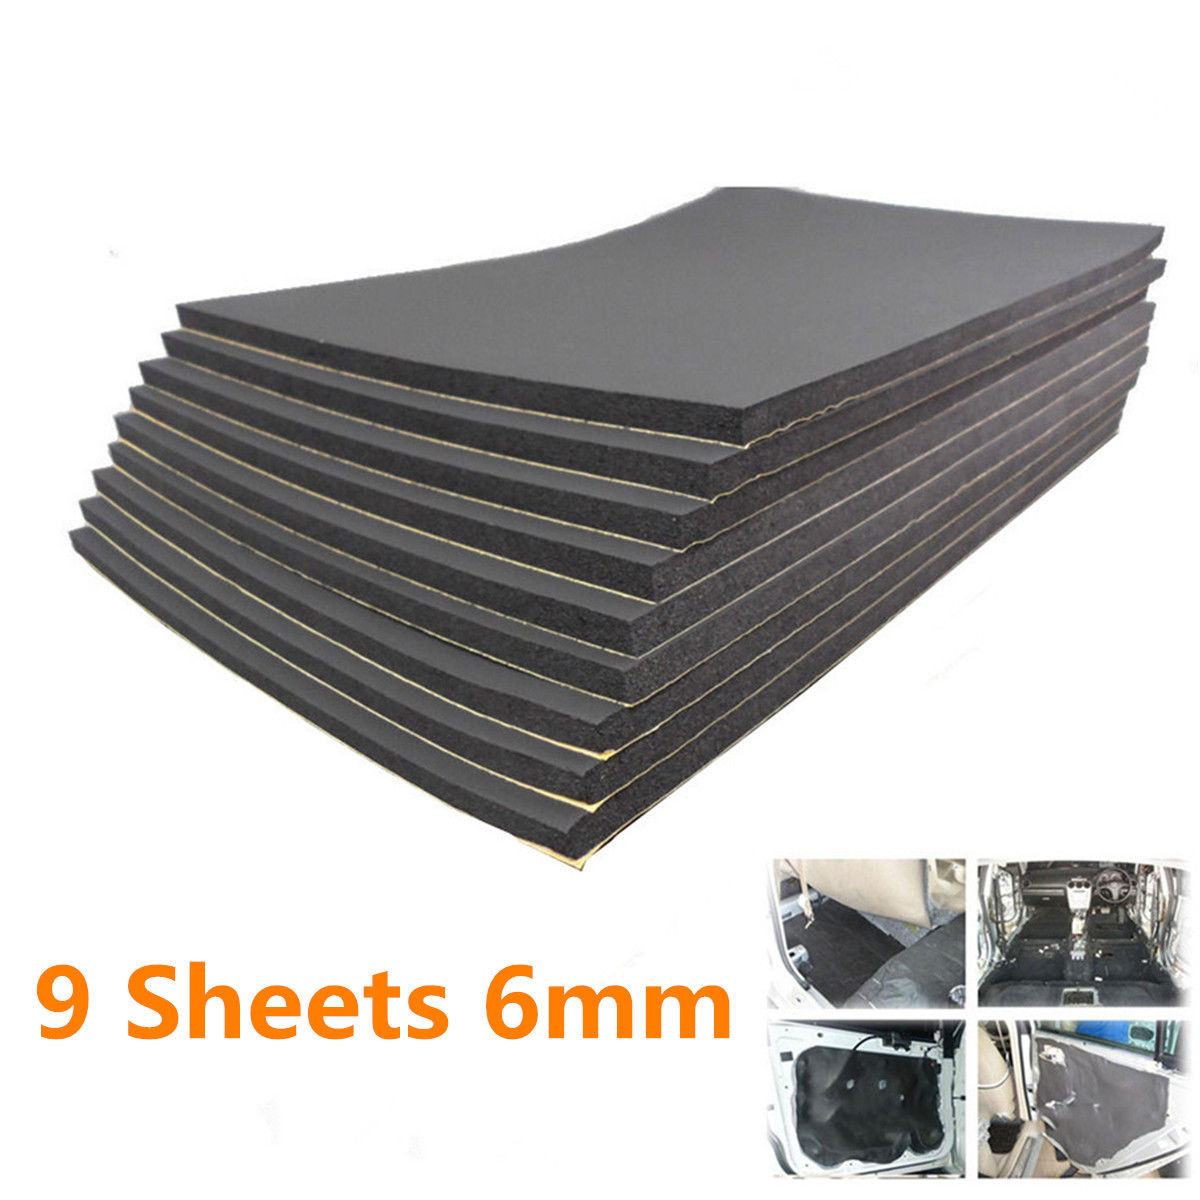 9pcs Car Sound Proof Insulation 30x50cm*6mm High Quality Rubber Plastic Auto Van Sound Proofing Deadening Insulation Foam